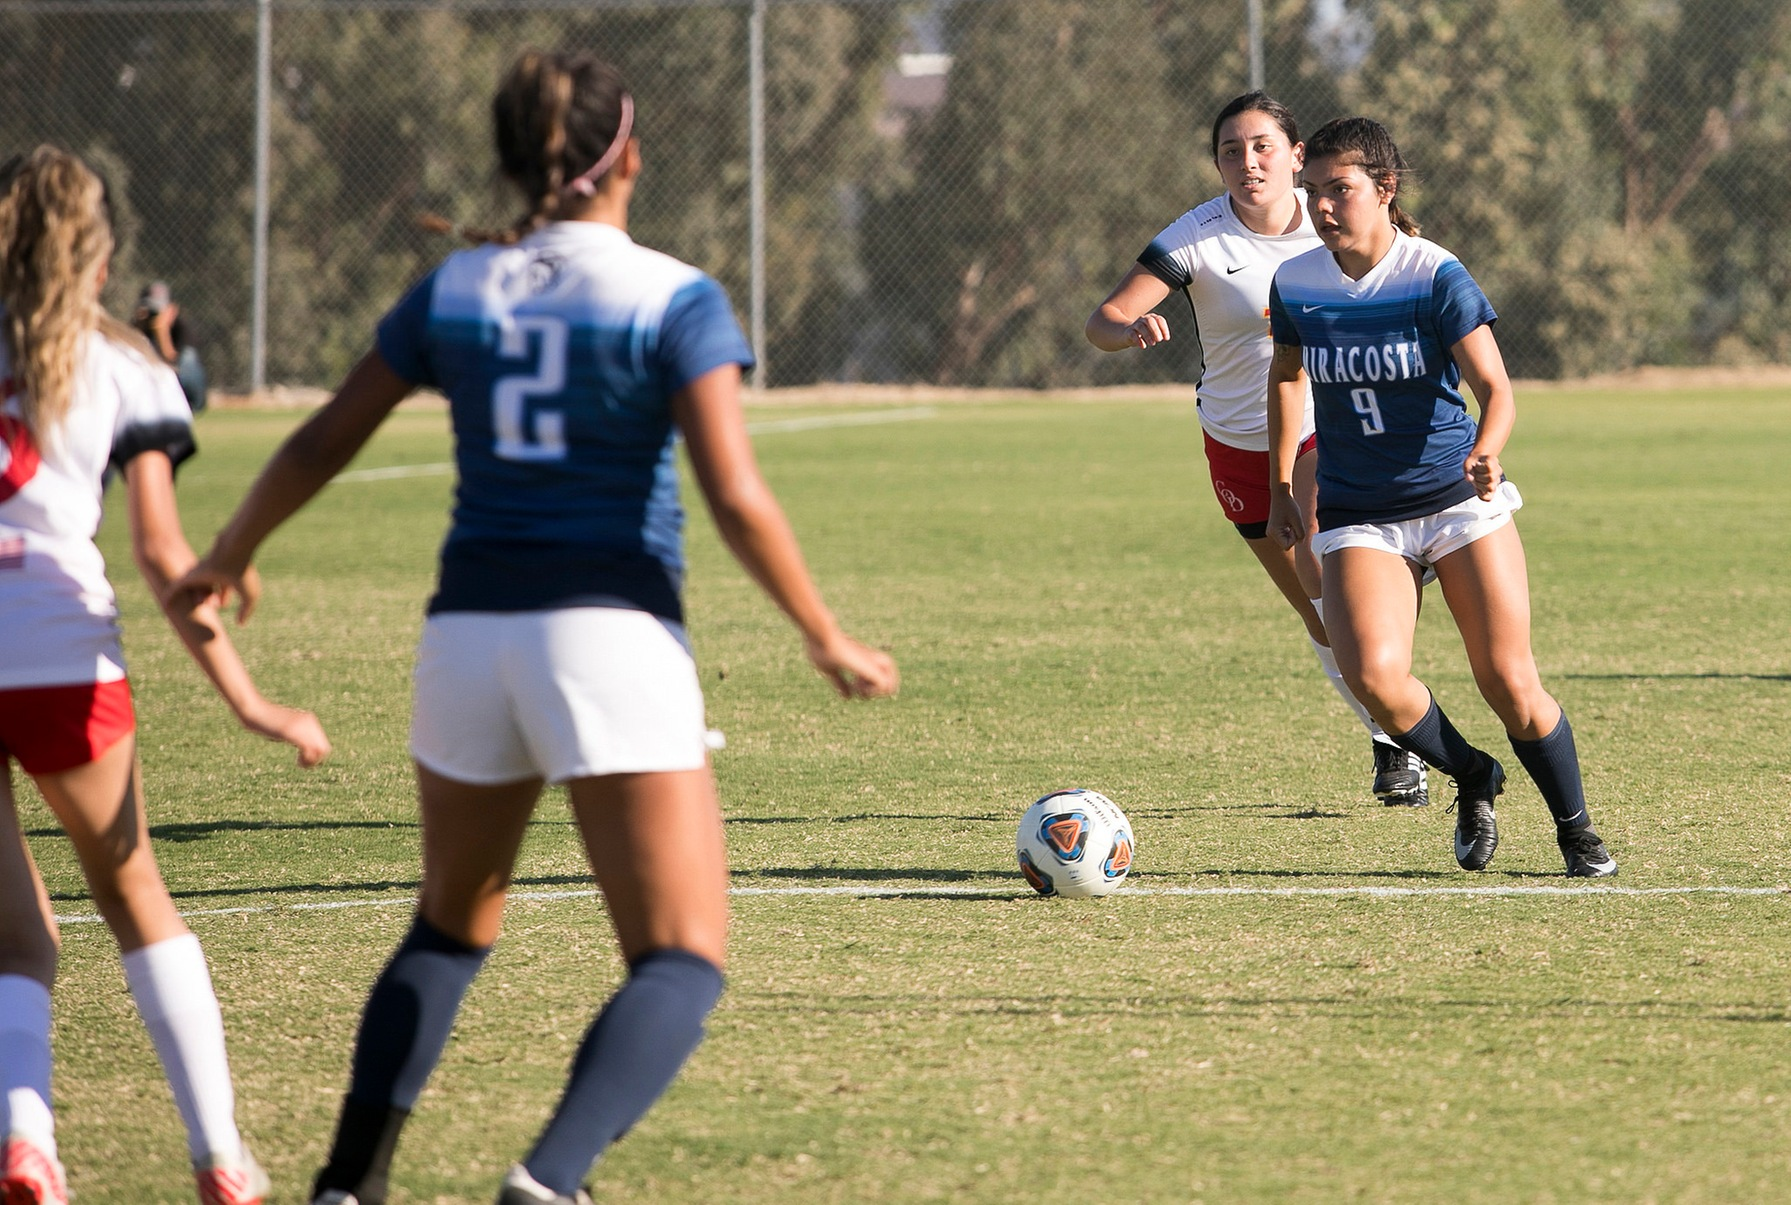 MiraCosta soccer player passes to teammate.